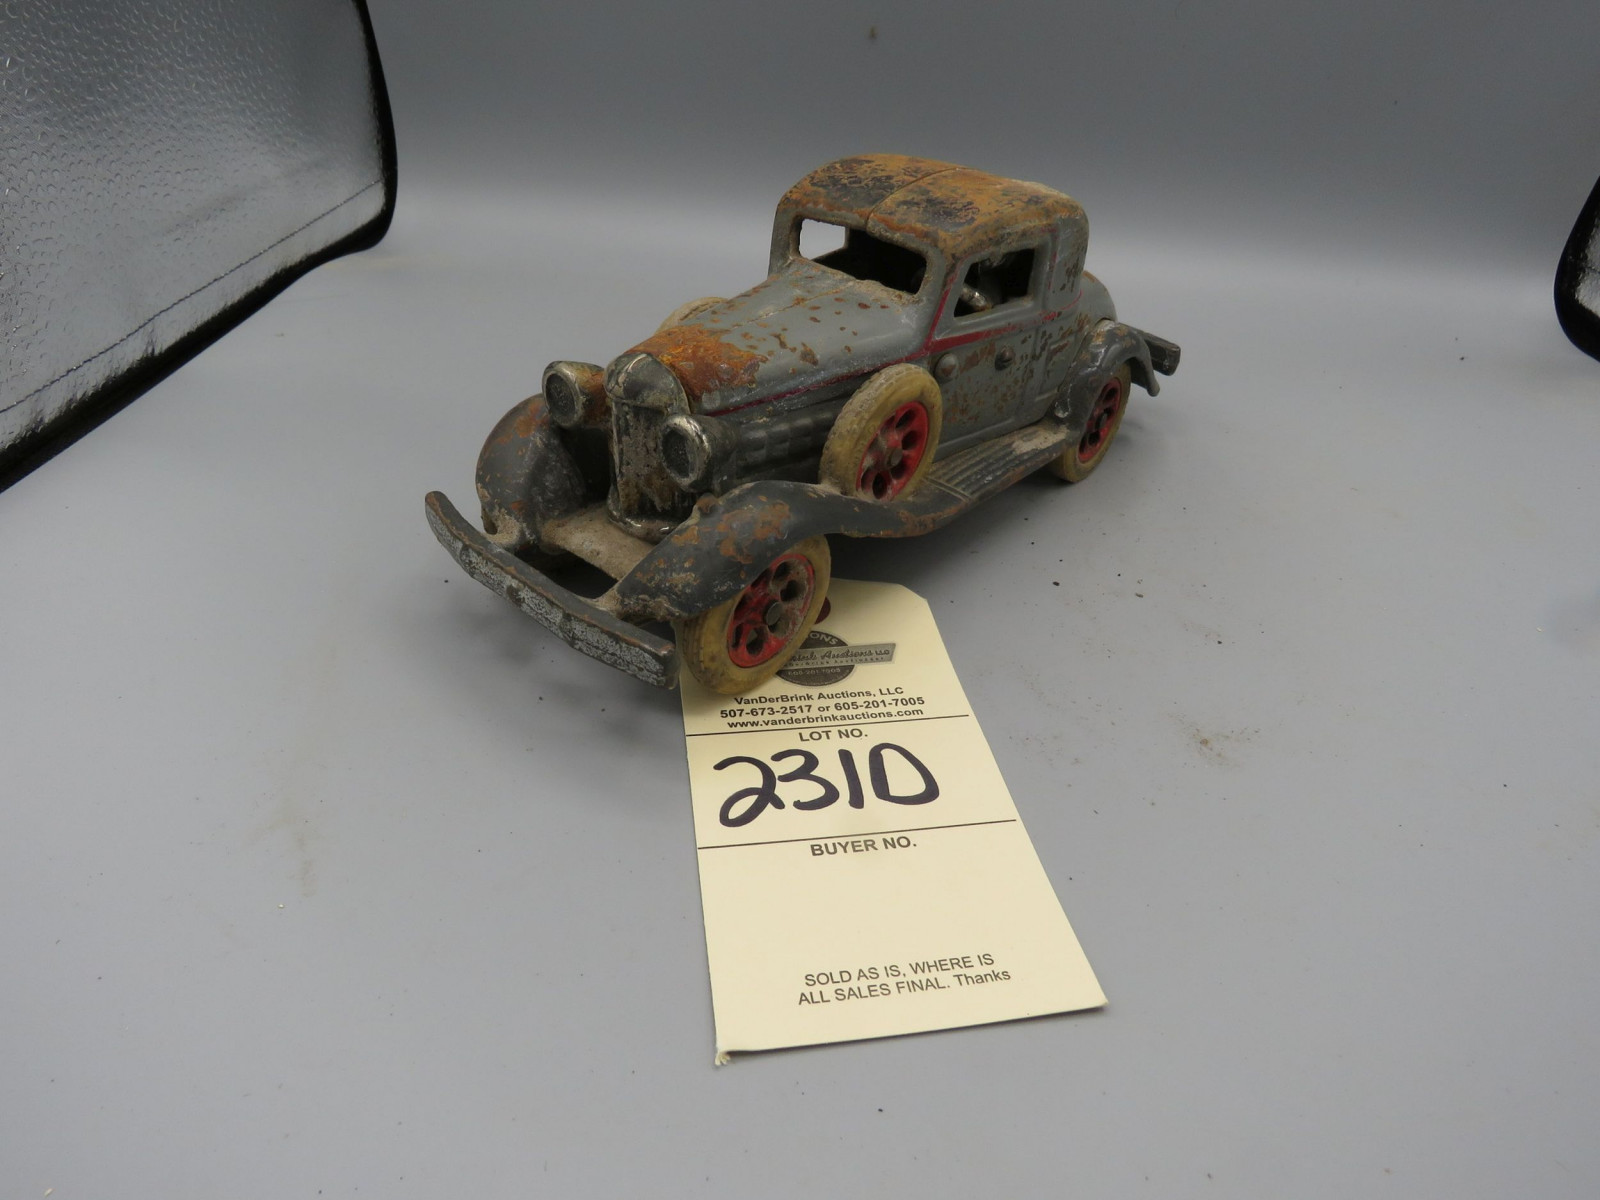 Vintage Cast Iron Car - Image 2